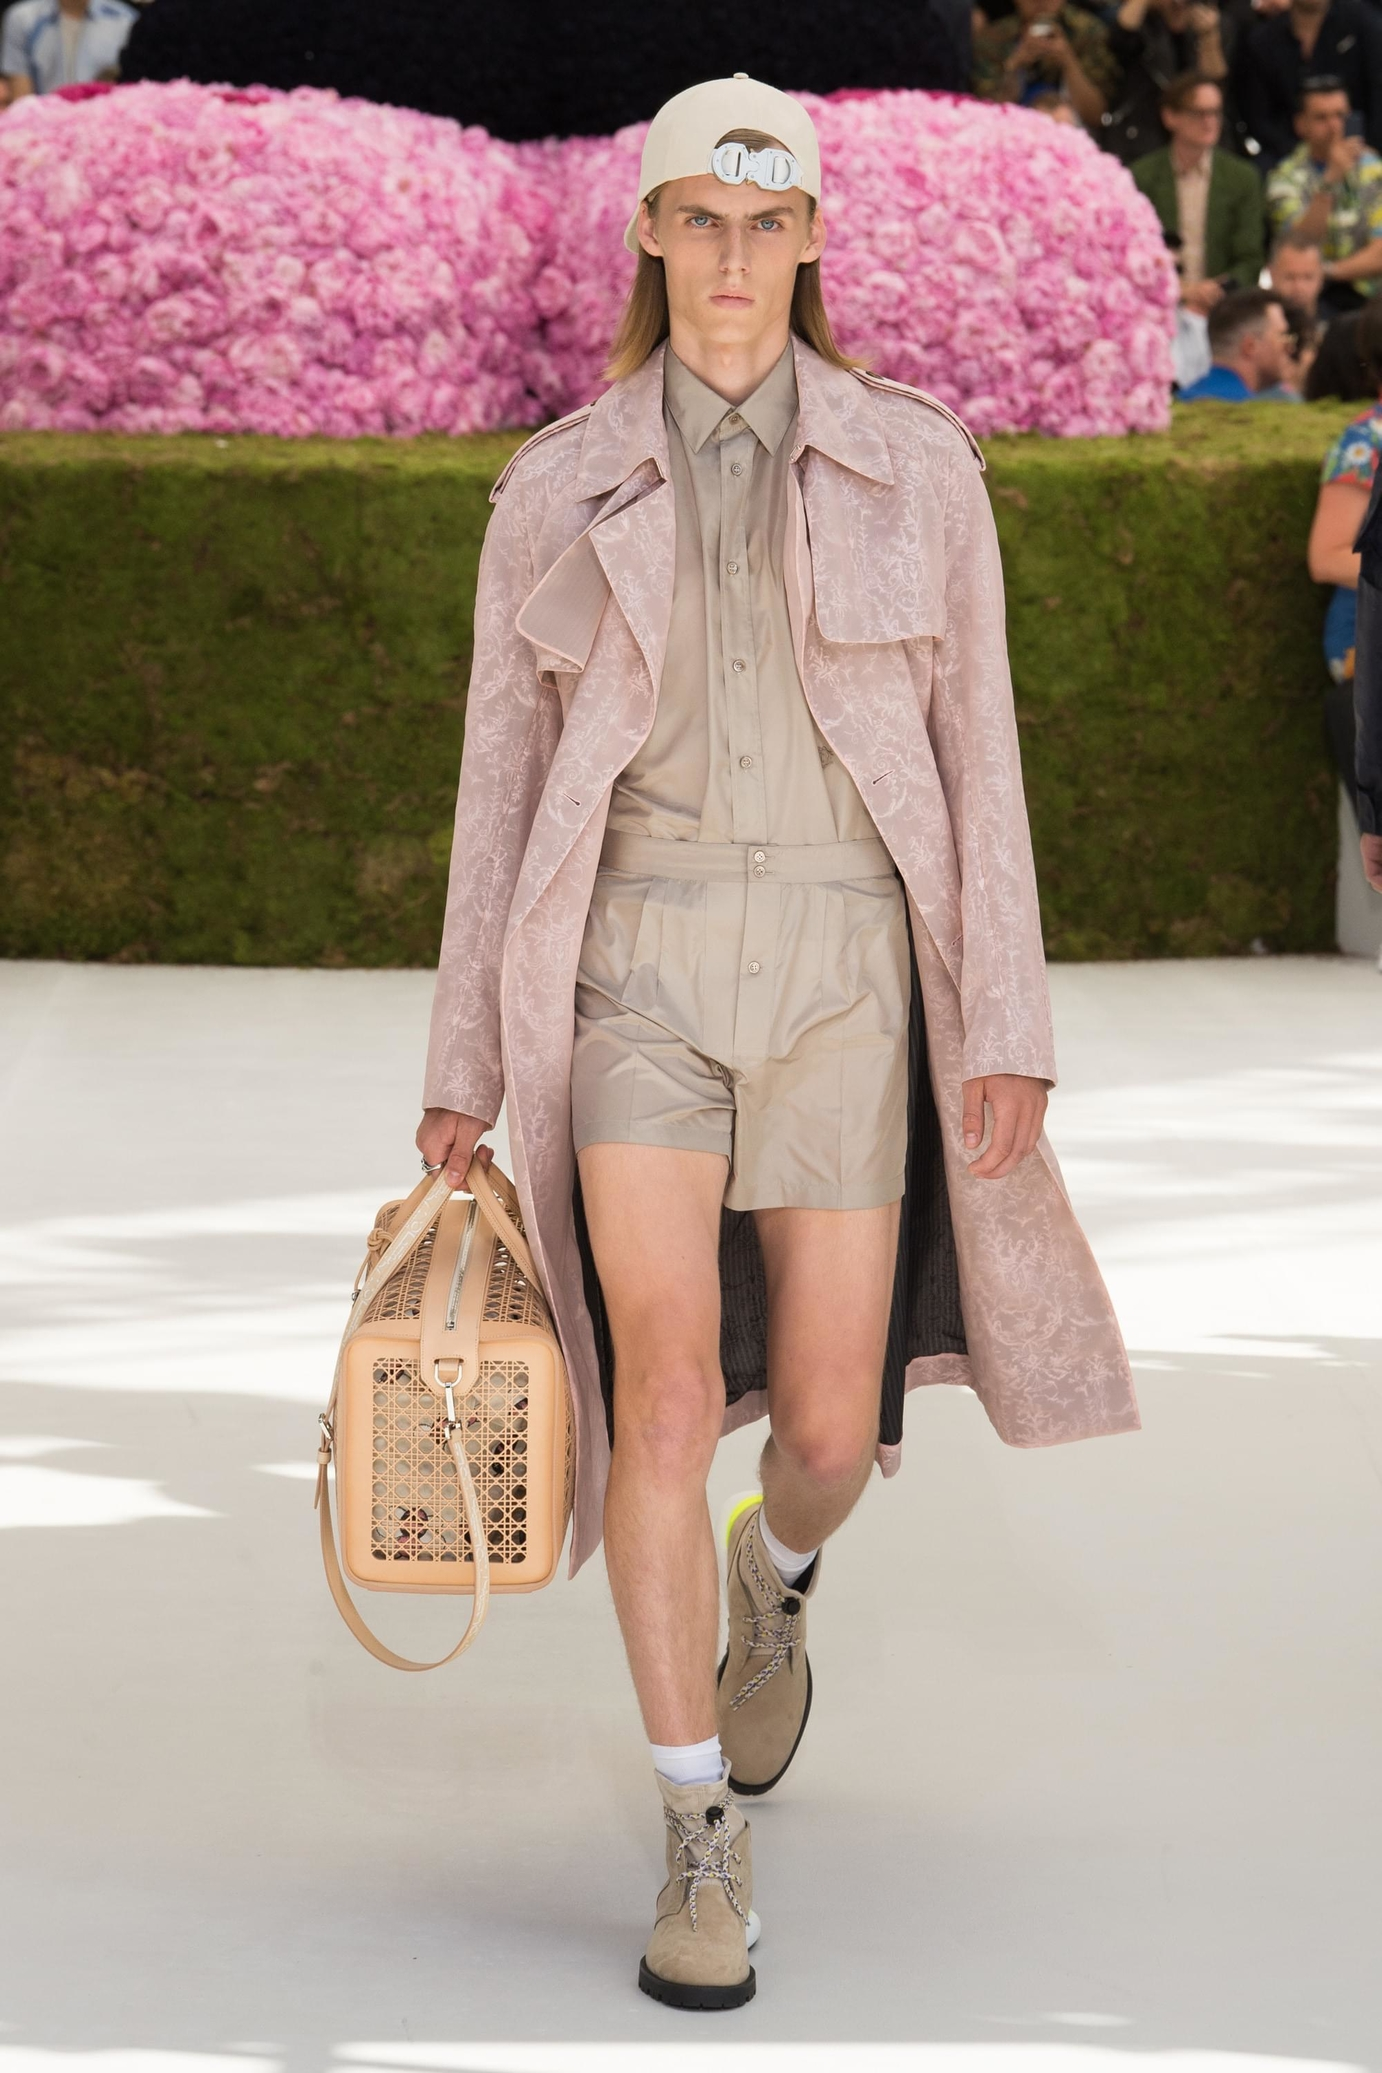 Discussion on this topic: Trend Report: Nude Tones, trend-report-nude-tones/